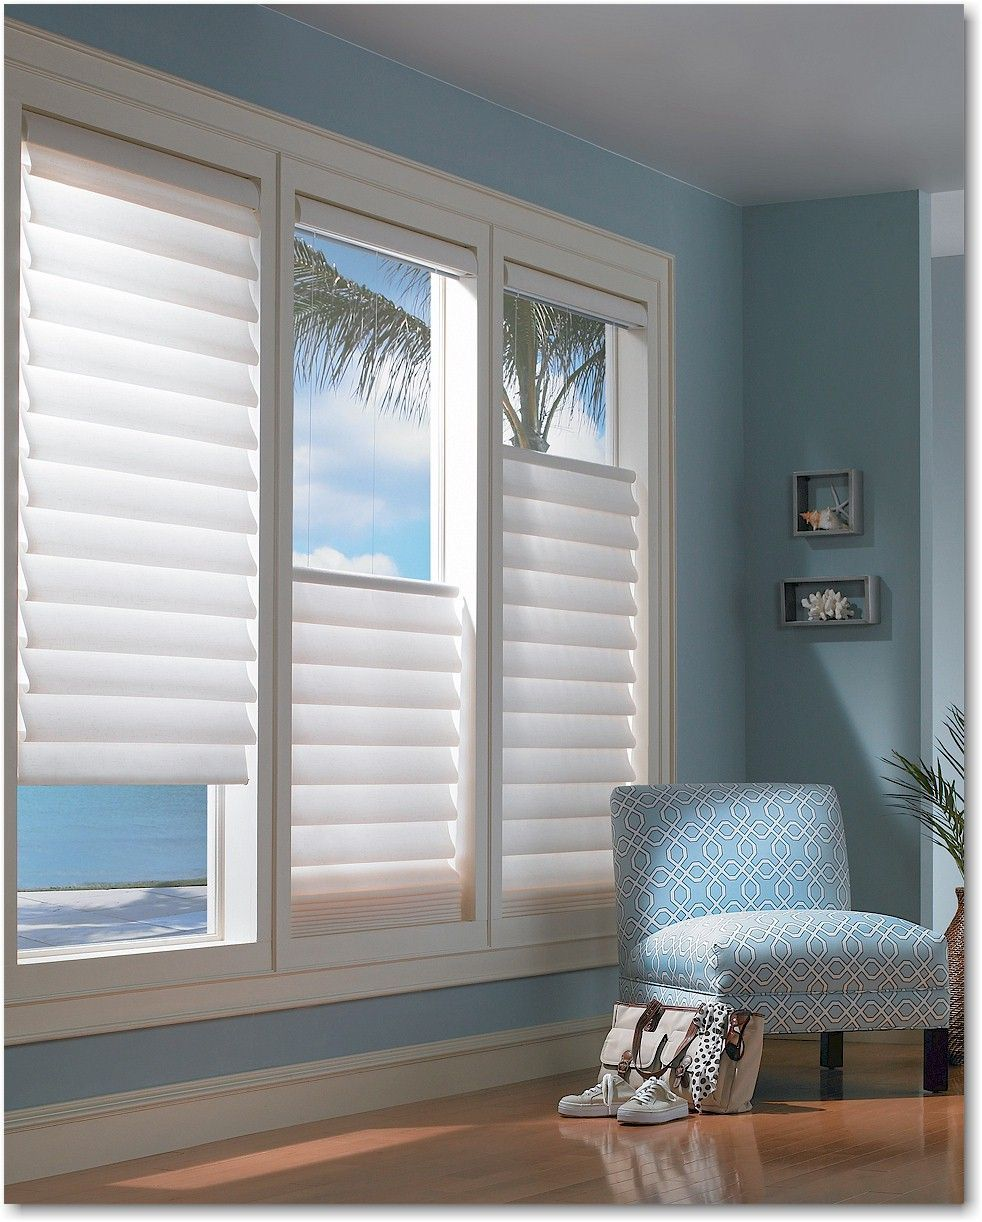 Popular window coverings   best pleated shades images on pinterest  cheap curtains hunter